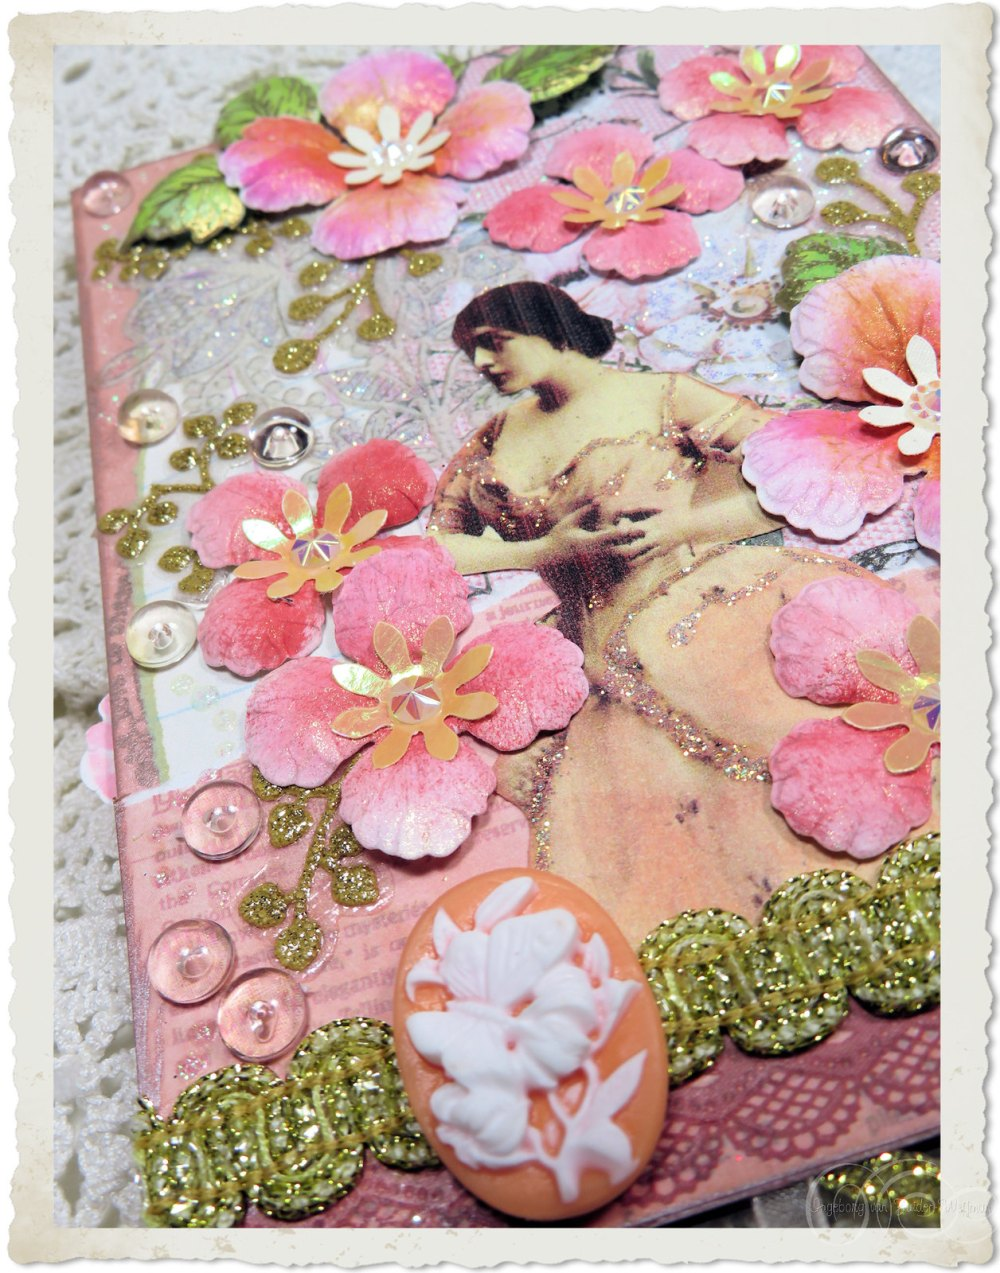 Details of handmade card with vintage lady